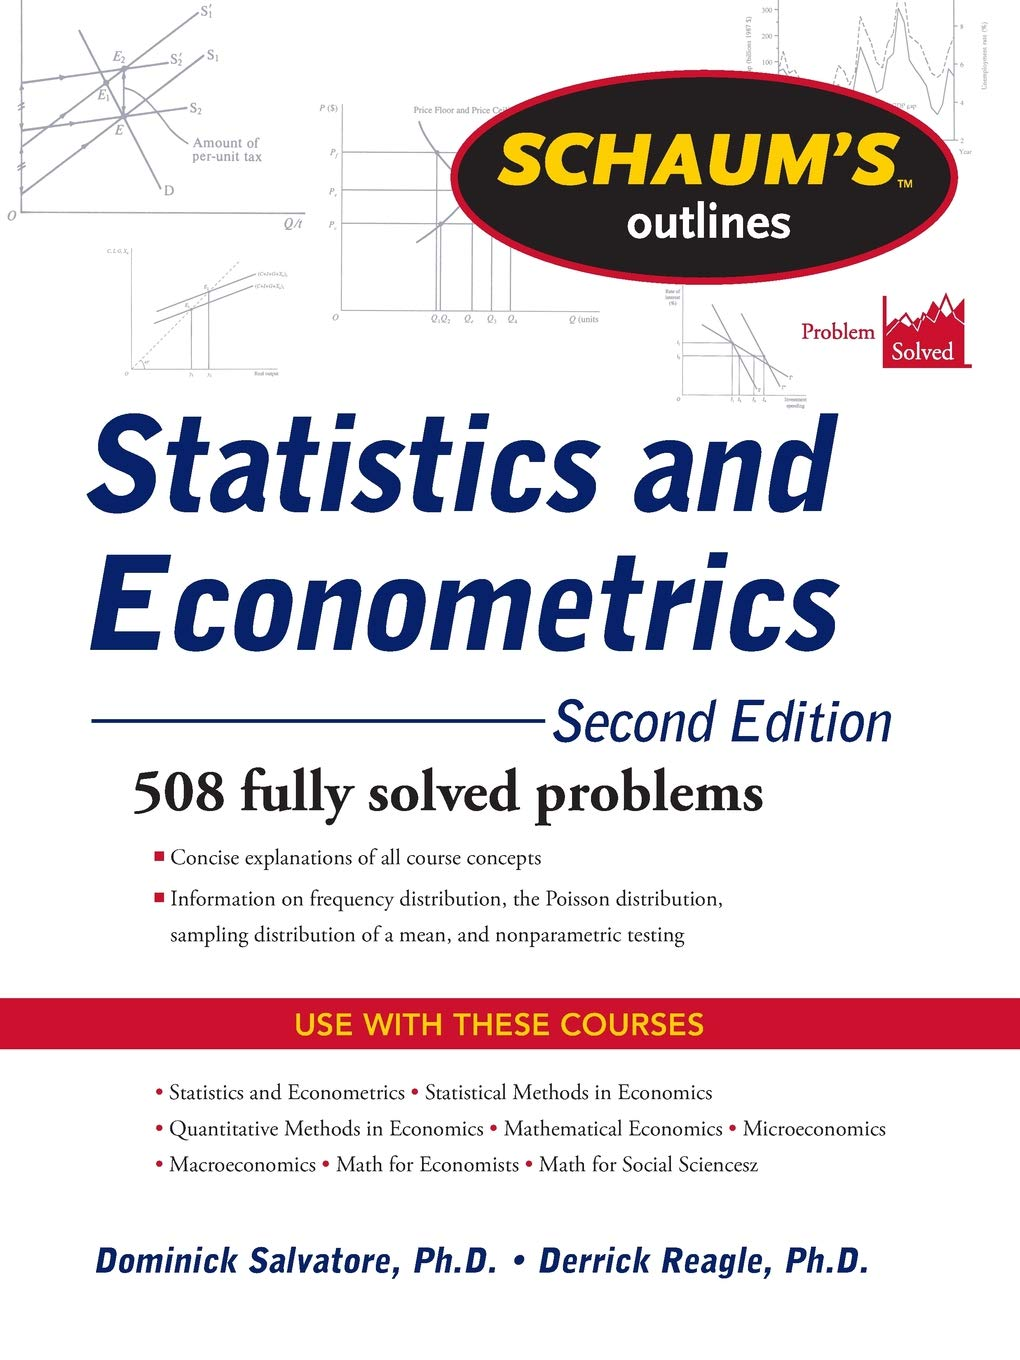 Schaum's Outline of Statistics and Econometrics, Second Edition (Schaum's  Outlines): Dominick Salvatore, Derrick Reagle: 9780071755474: Amazon.com:  Books